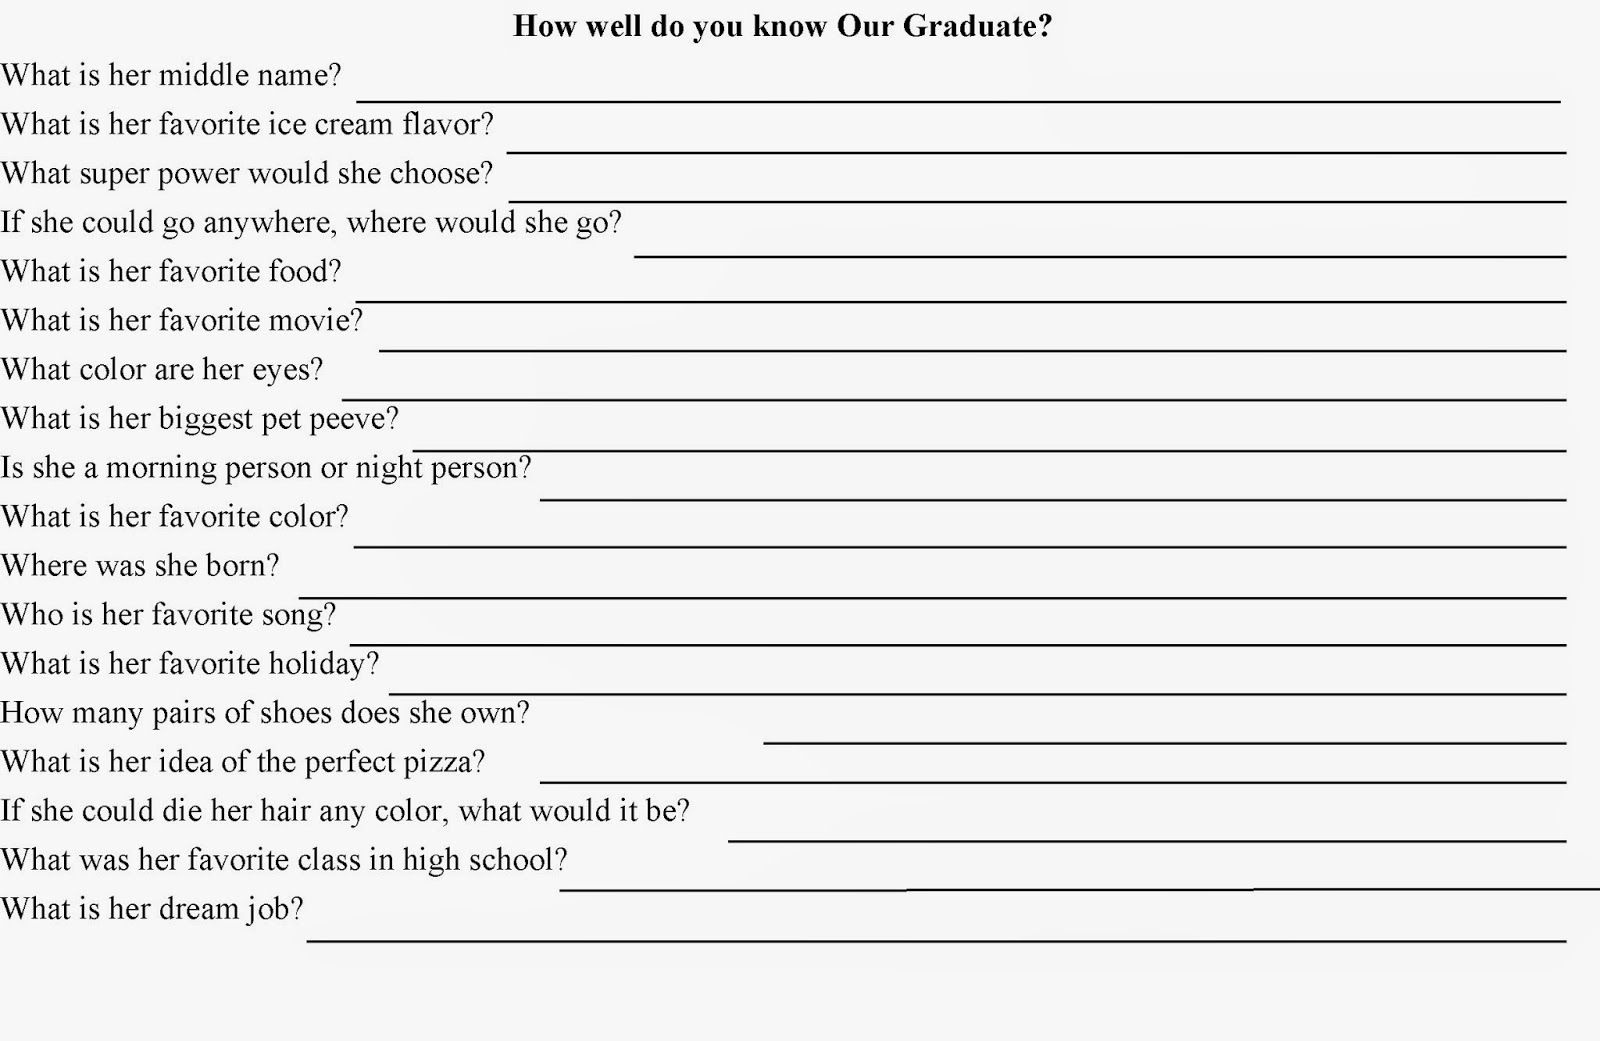 Pinjoy Bianchi Brown On P's Sweet 16   Birthday Games - Free Printable Graduation Party Games